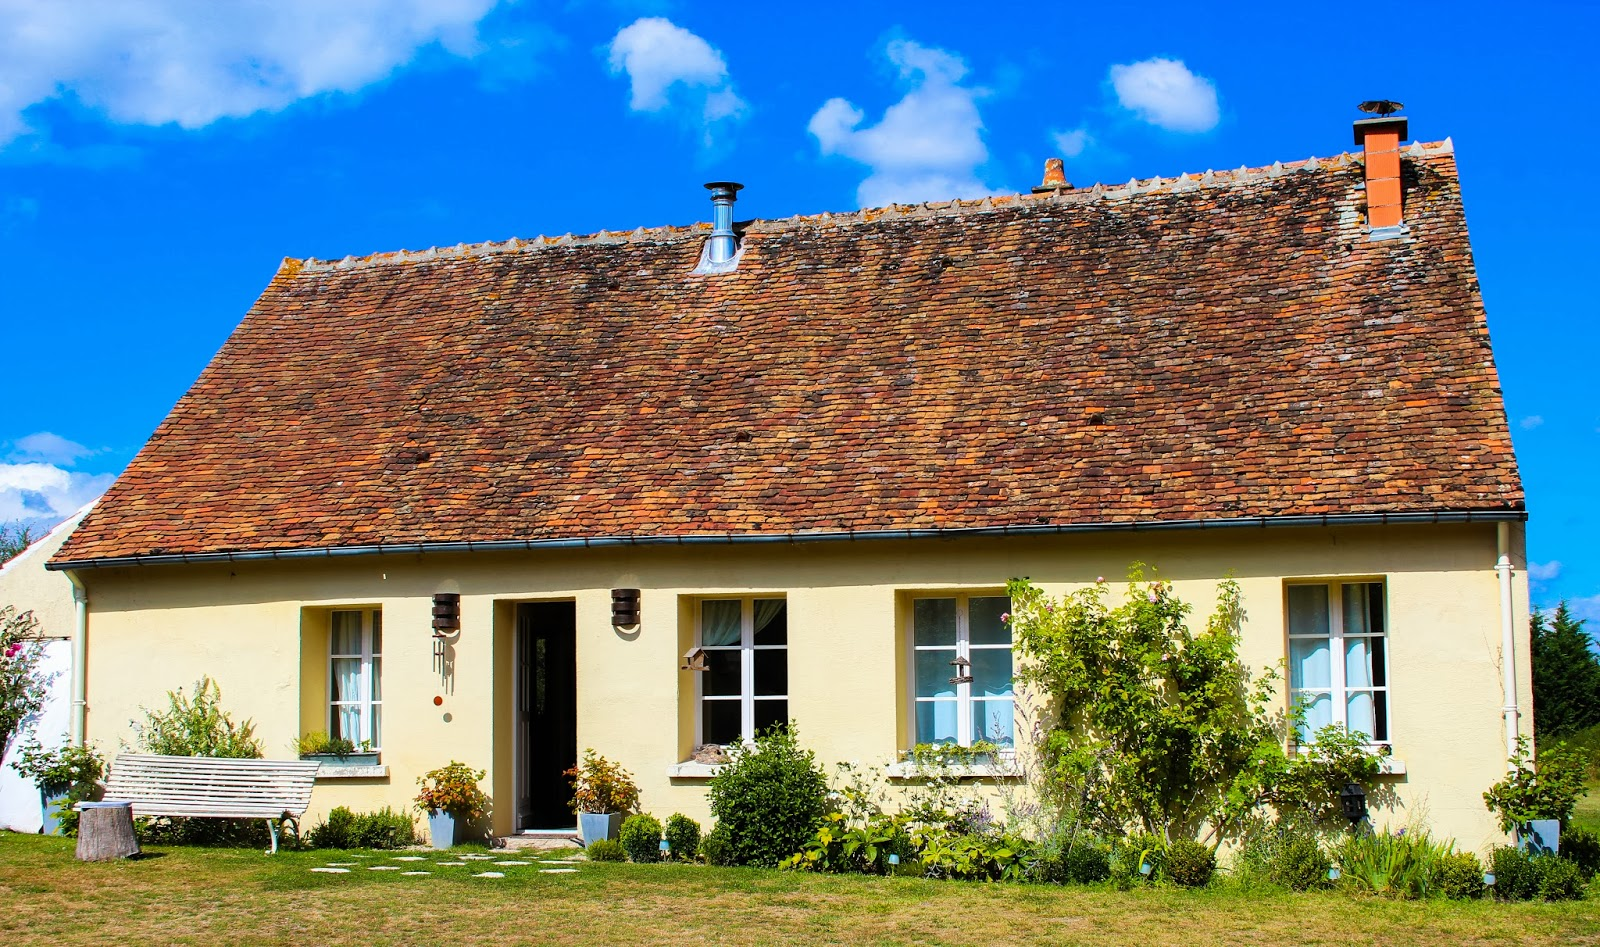 15 wonderful french countryside house architecture plans for French countryside homes